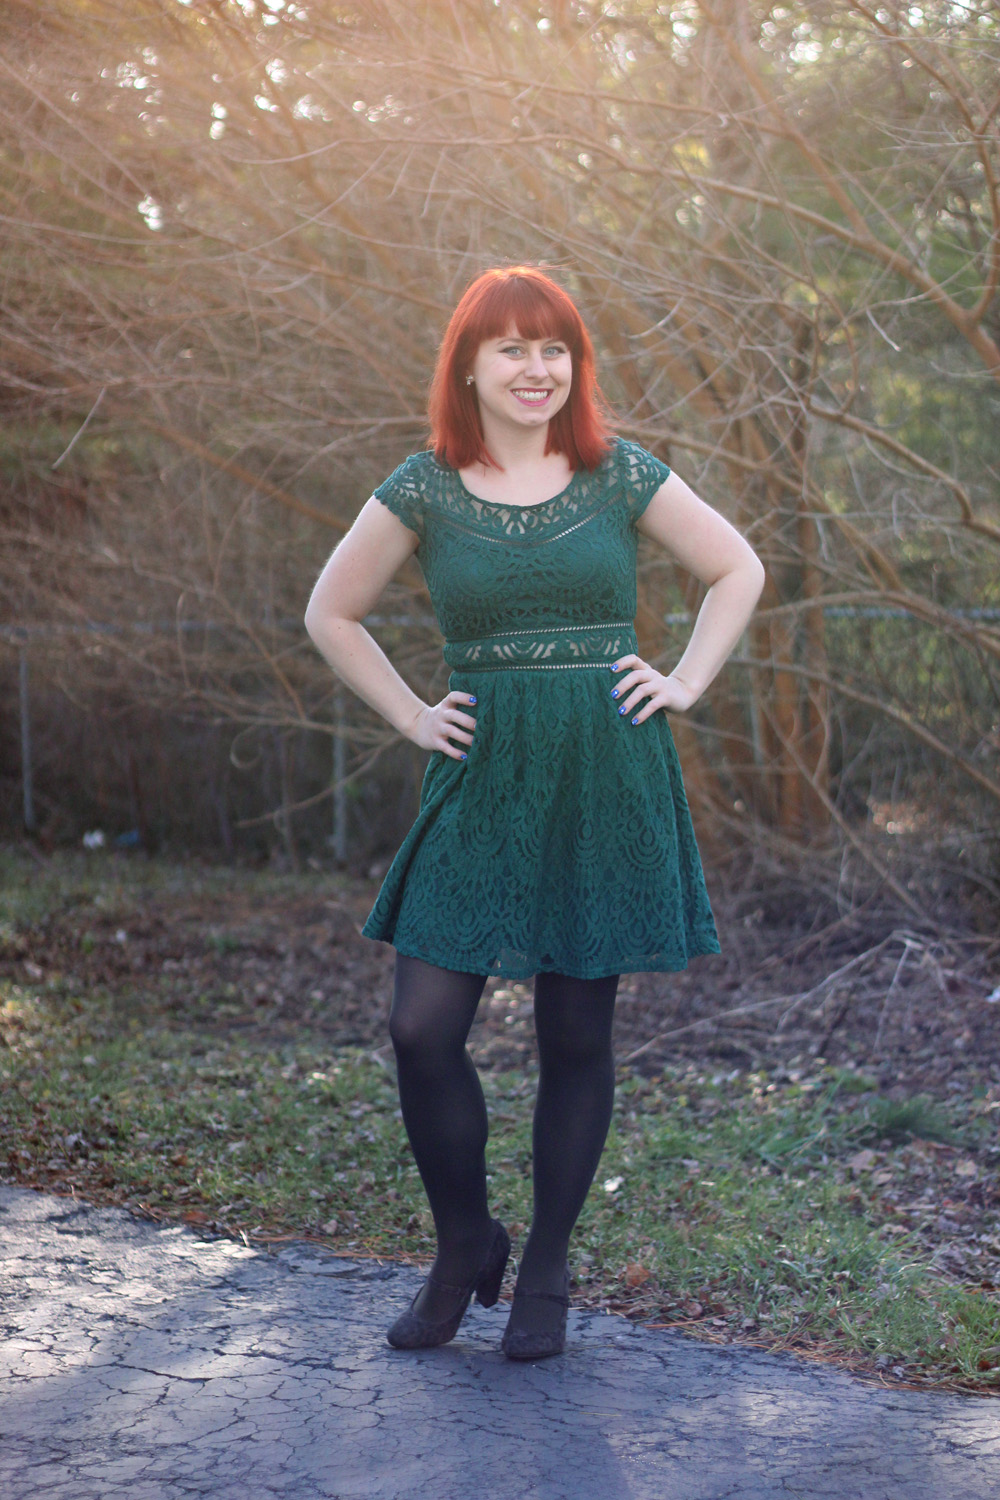 Dark Green Lace H&M Dress with Sheer Waist, Dark Gray Tights, and Gray Leopard Print Rounded Heels